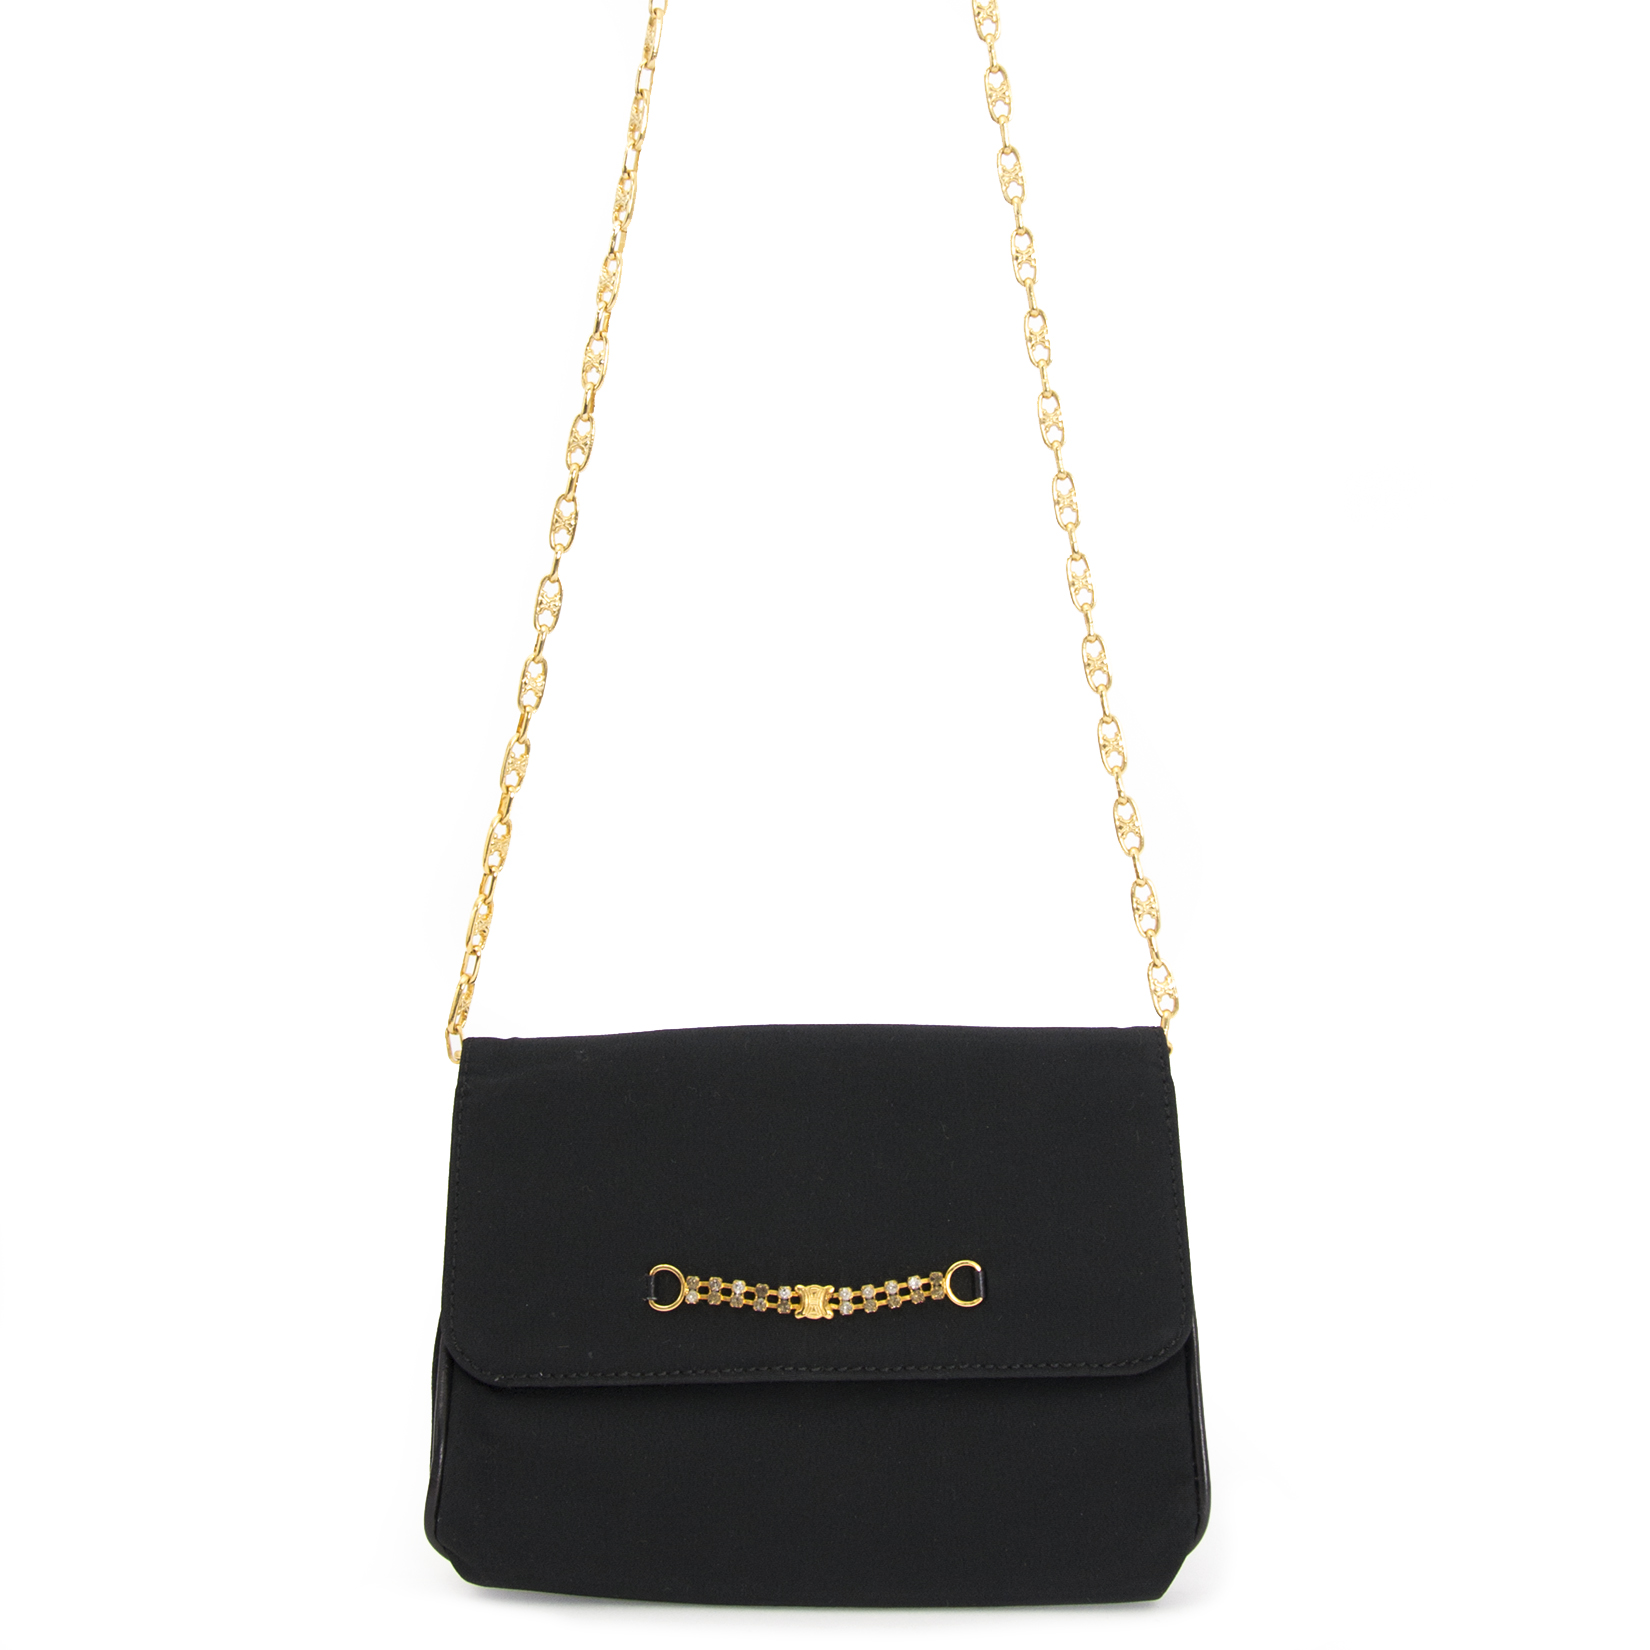 Achetez maintenant en ligne votre second main Céline Black Fabric Evening Bag chez labellov.com